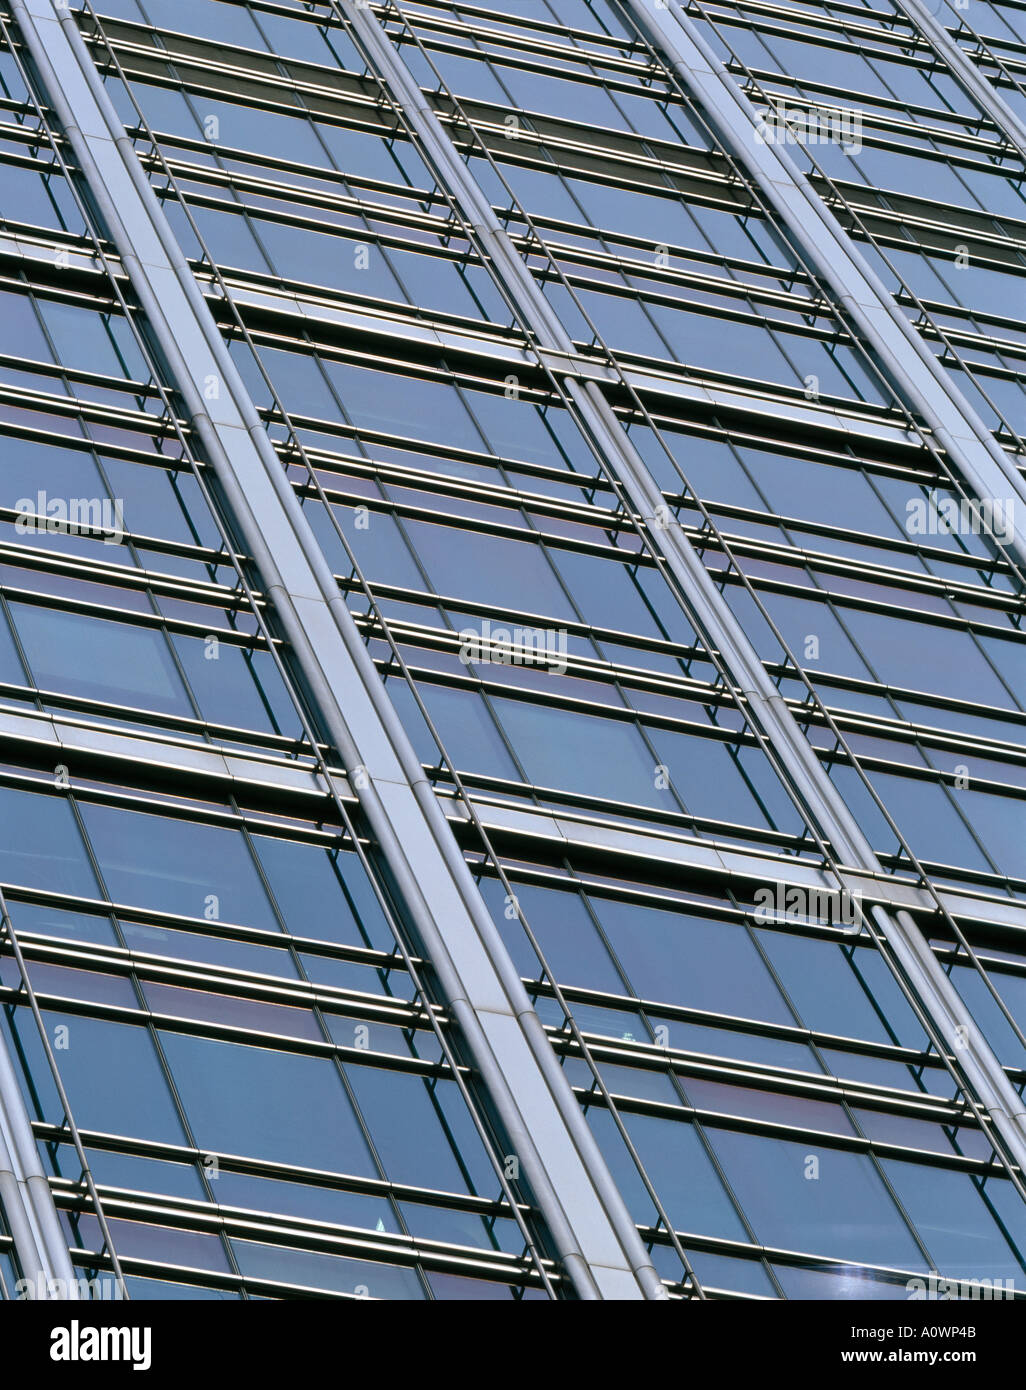 Canary Wharf, Docklands, London. Detail of fenestration. Architect: Cesar Pelli and Associates - Stock Image